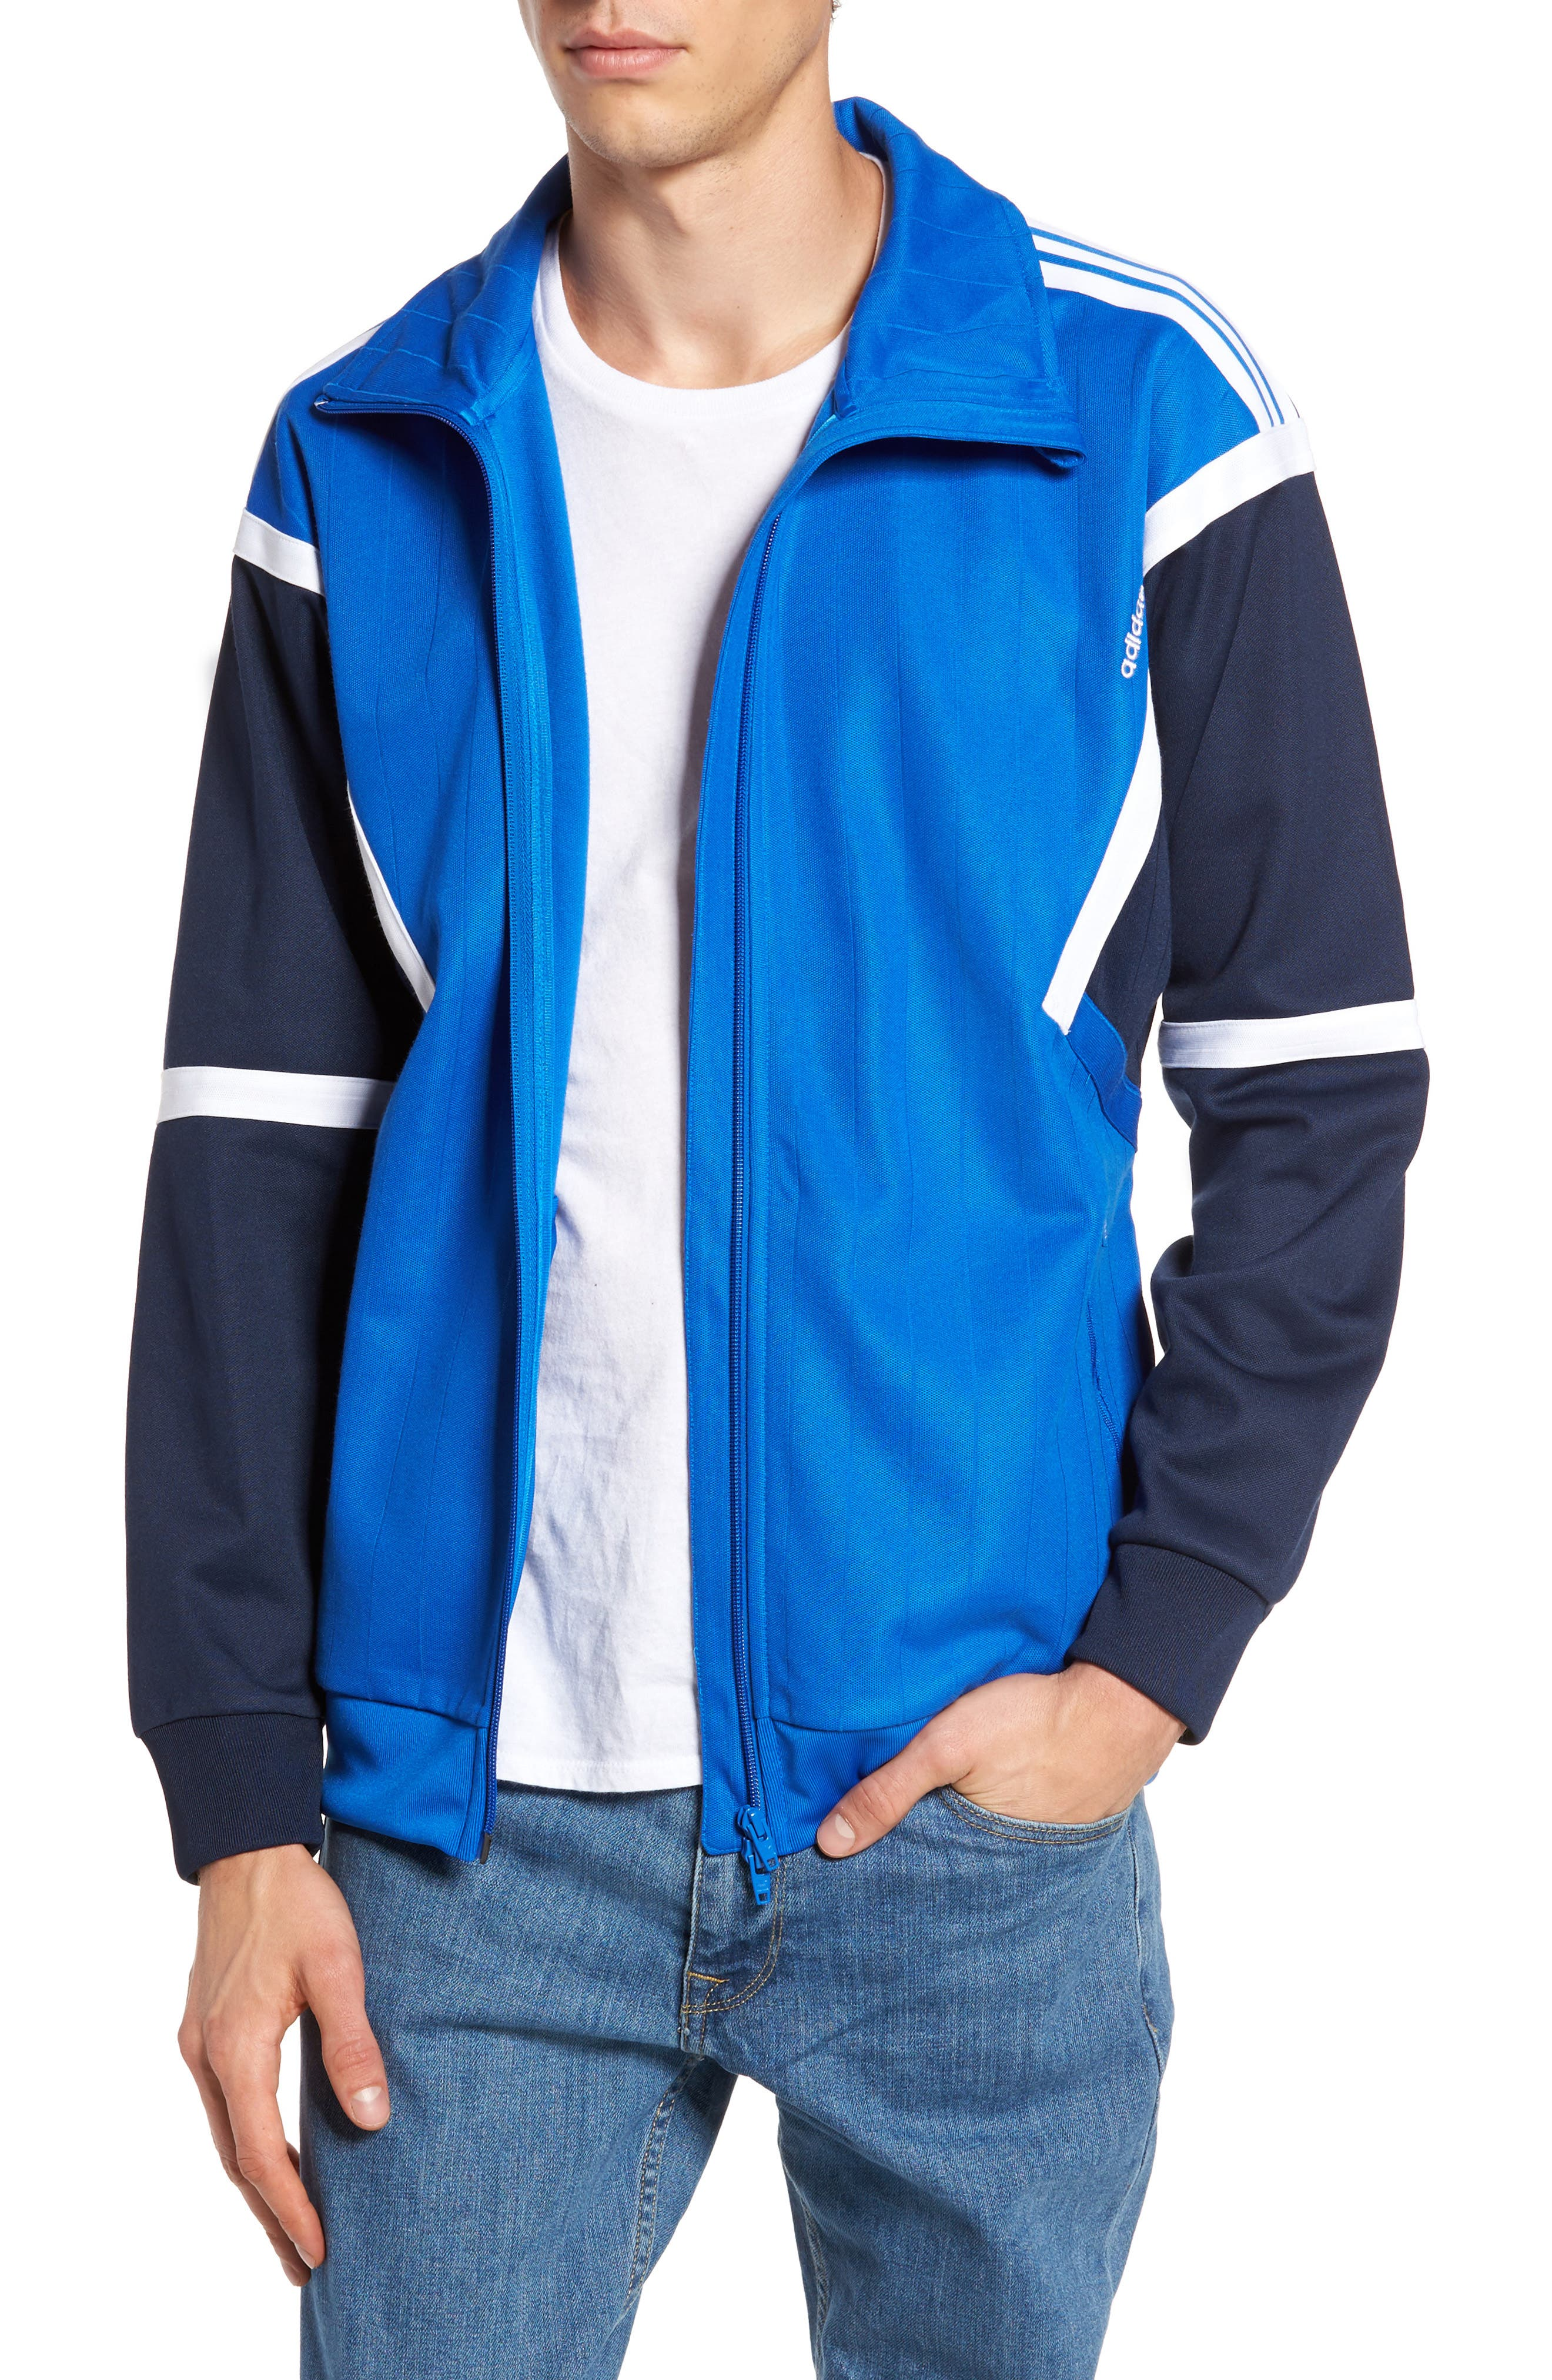 Water Resistant Training Track Jacket,                             Main thumbnail 1, color,                             Blue